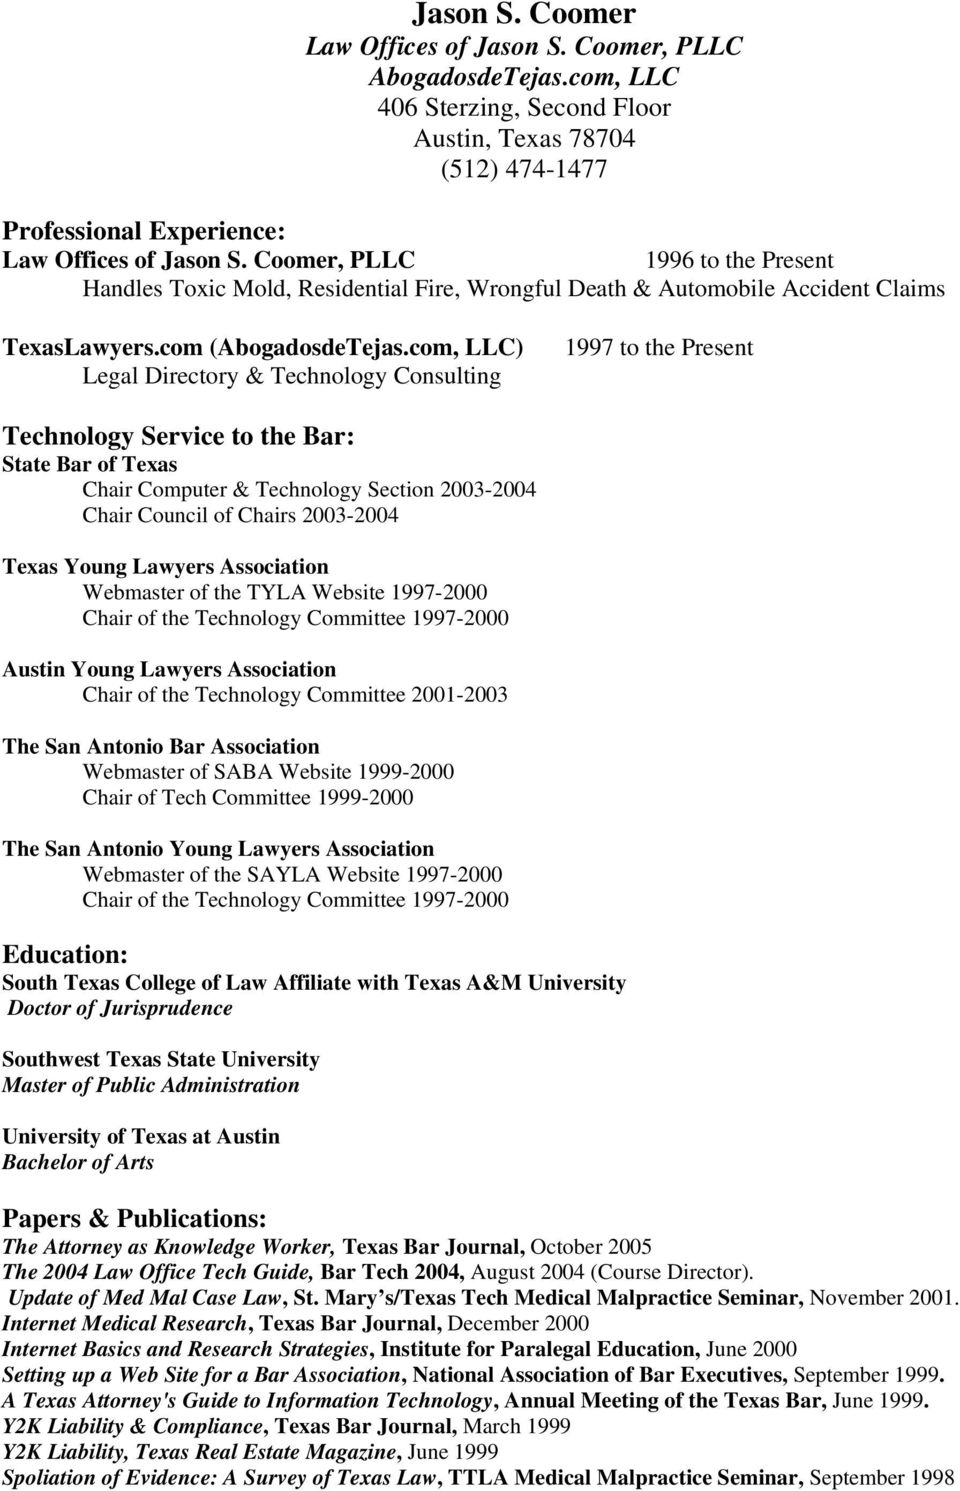 com, LLC) Legal Directory & Technology Consulting 1997 to the Present Technology Service to the Bar: State Bar of Texas Chair Computer & Technology Section 2003-2004 Chair Council of Chairs 2003-2004